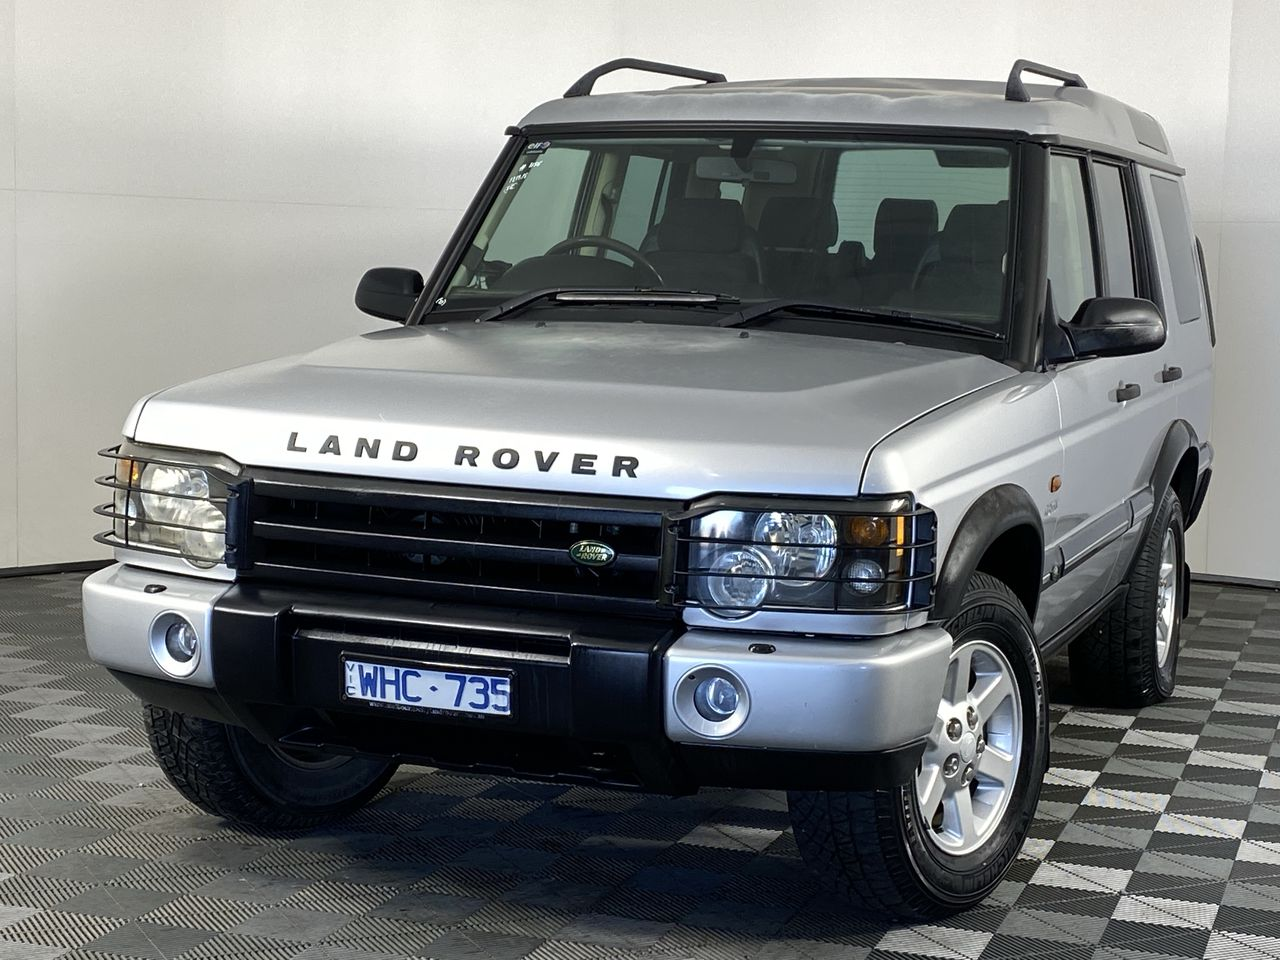 2004 Land Rover Discovery Classic Turbo Diesel Manual Wagon